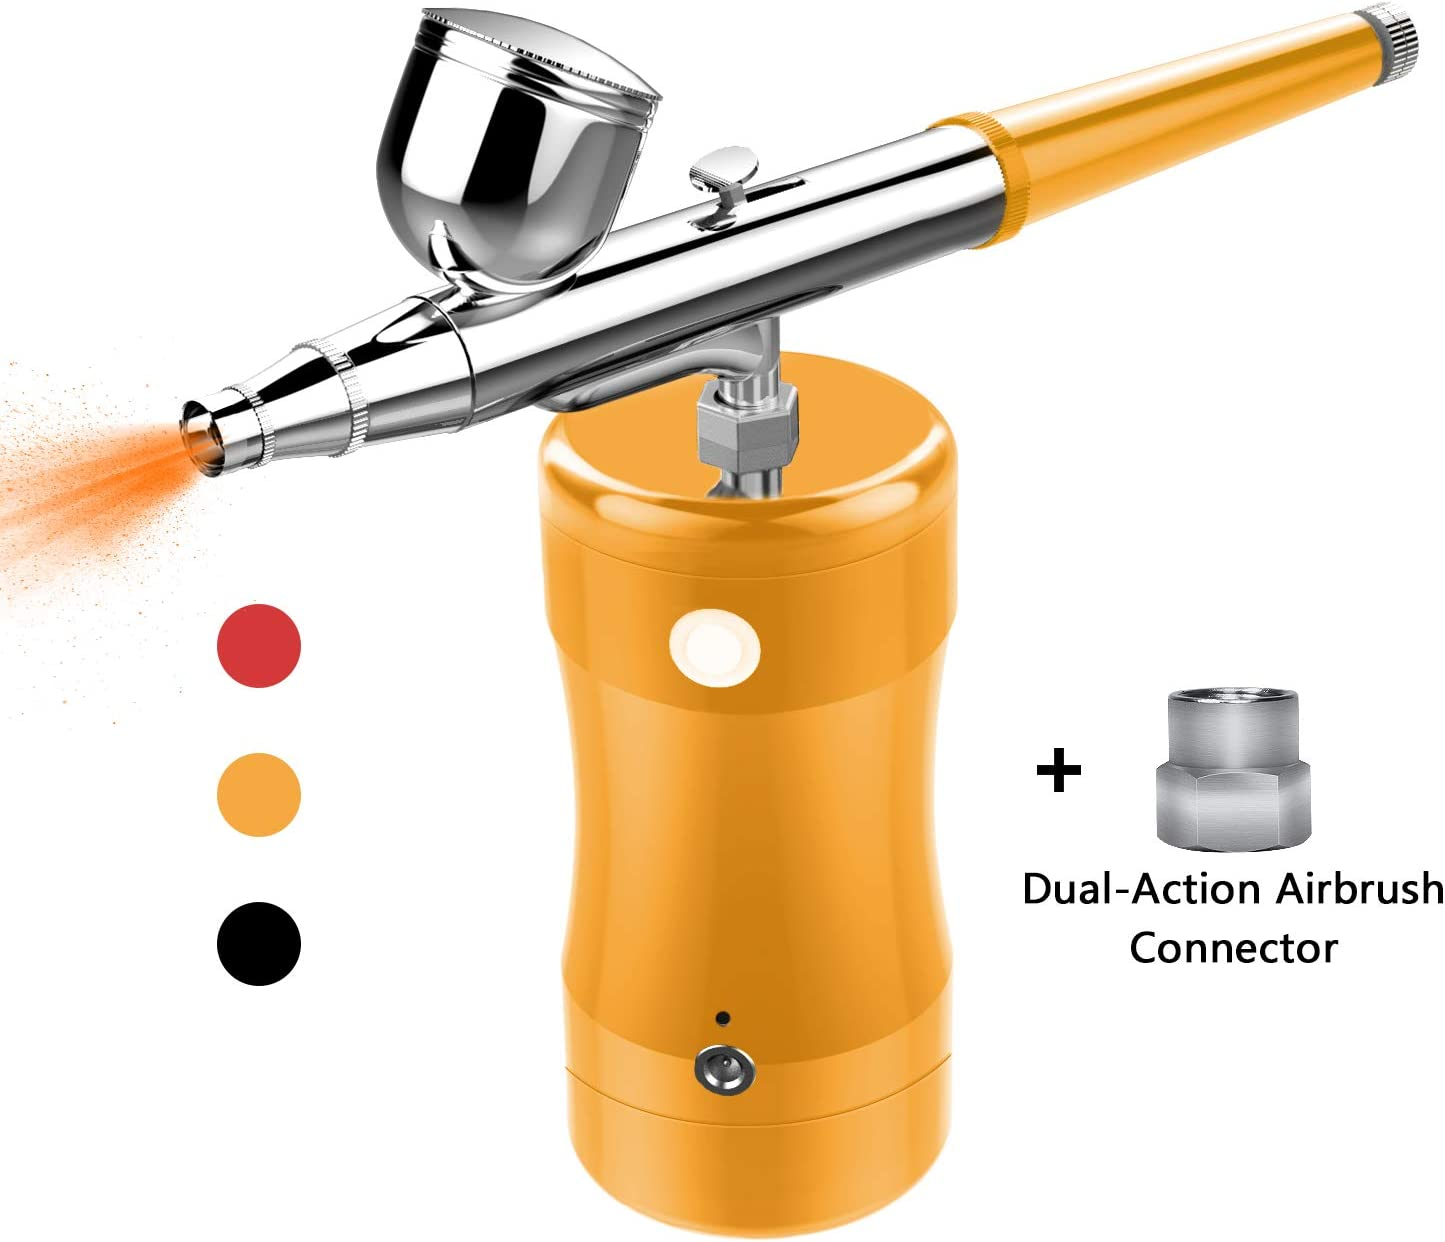 COSSCCI Upgraded Airbrush Kit, Portable Mini Air Brush Spray Gun with Compressor Kit Single Action Air Brush Painting Kits for Cake Decorating Makeup Art Nail Model Painting Tattoo Manicure (Gold)